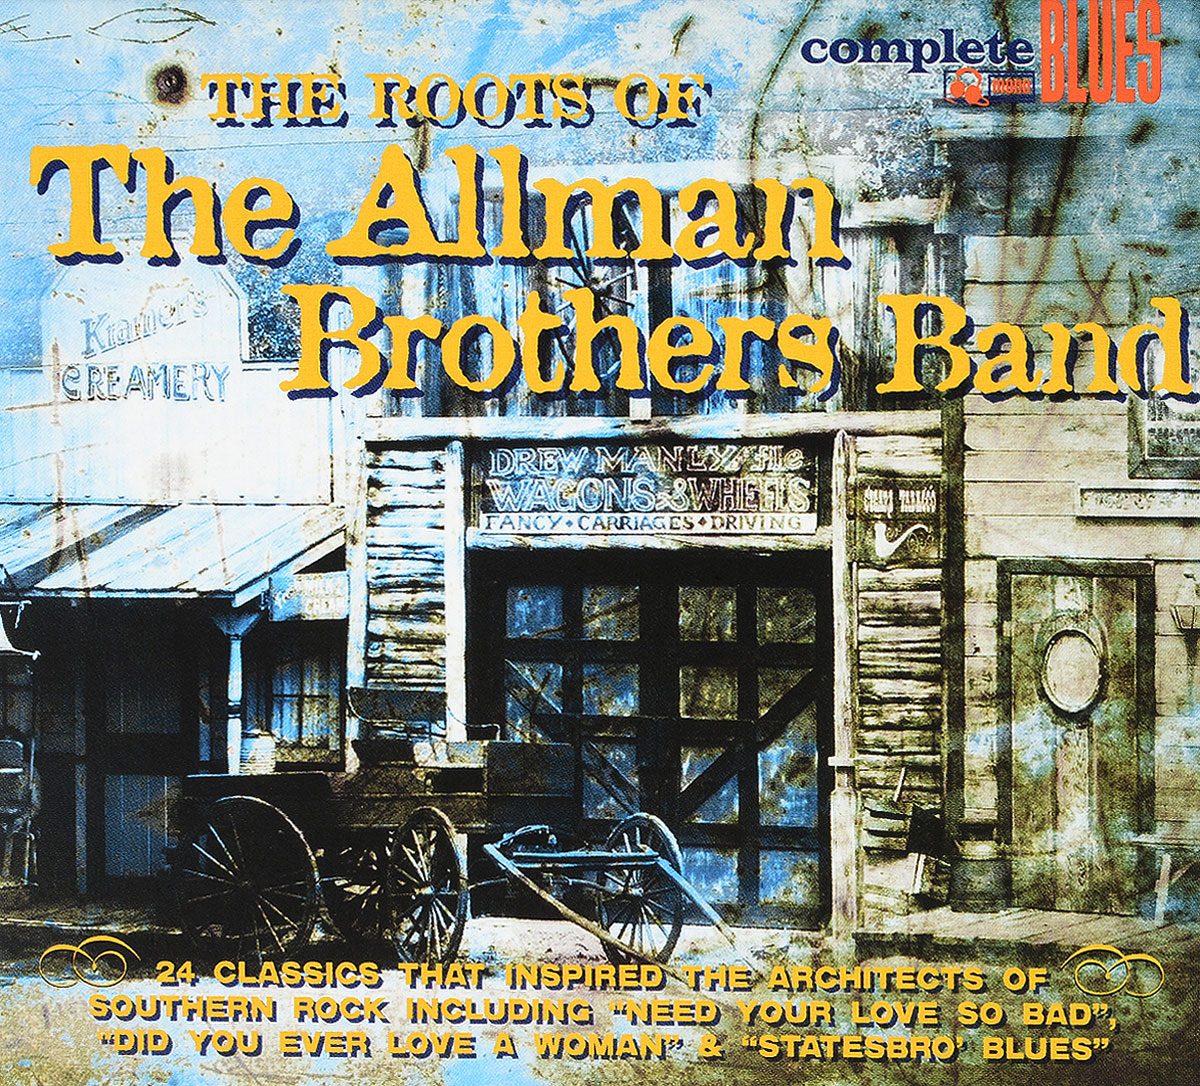 Complete Blues. The Roots Of The Allman Brothers Band